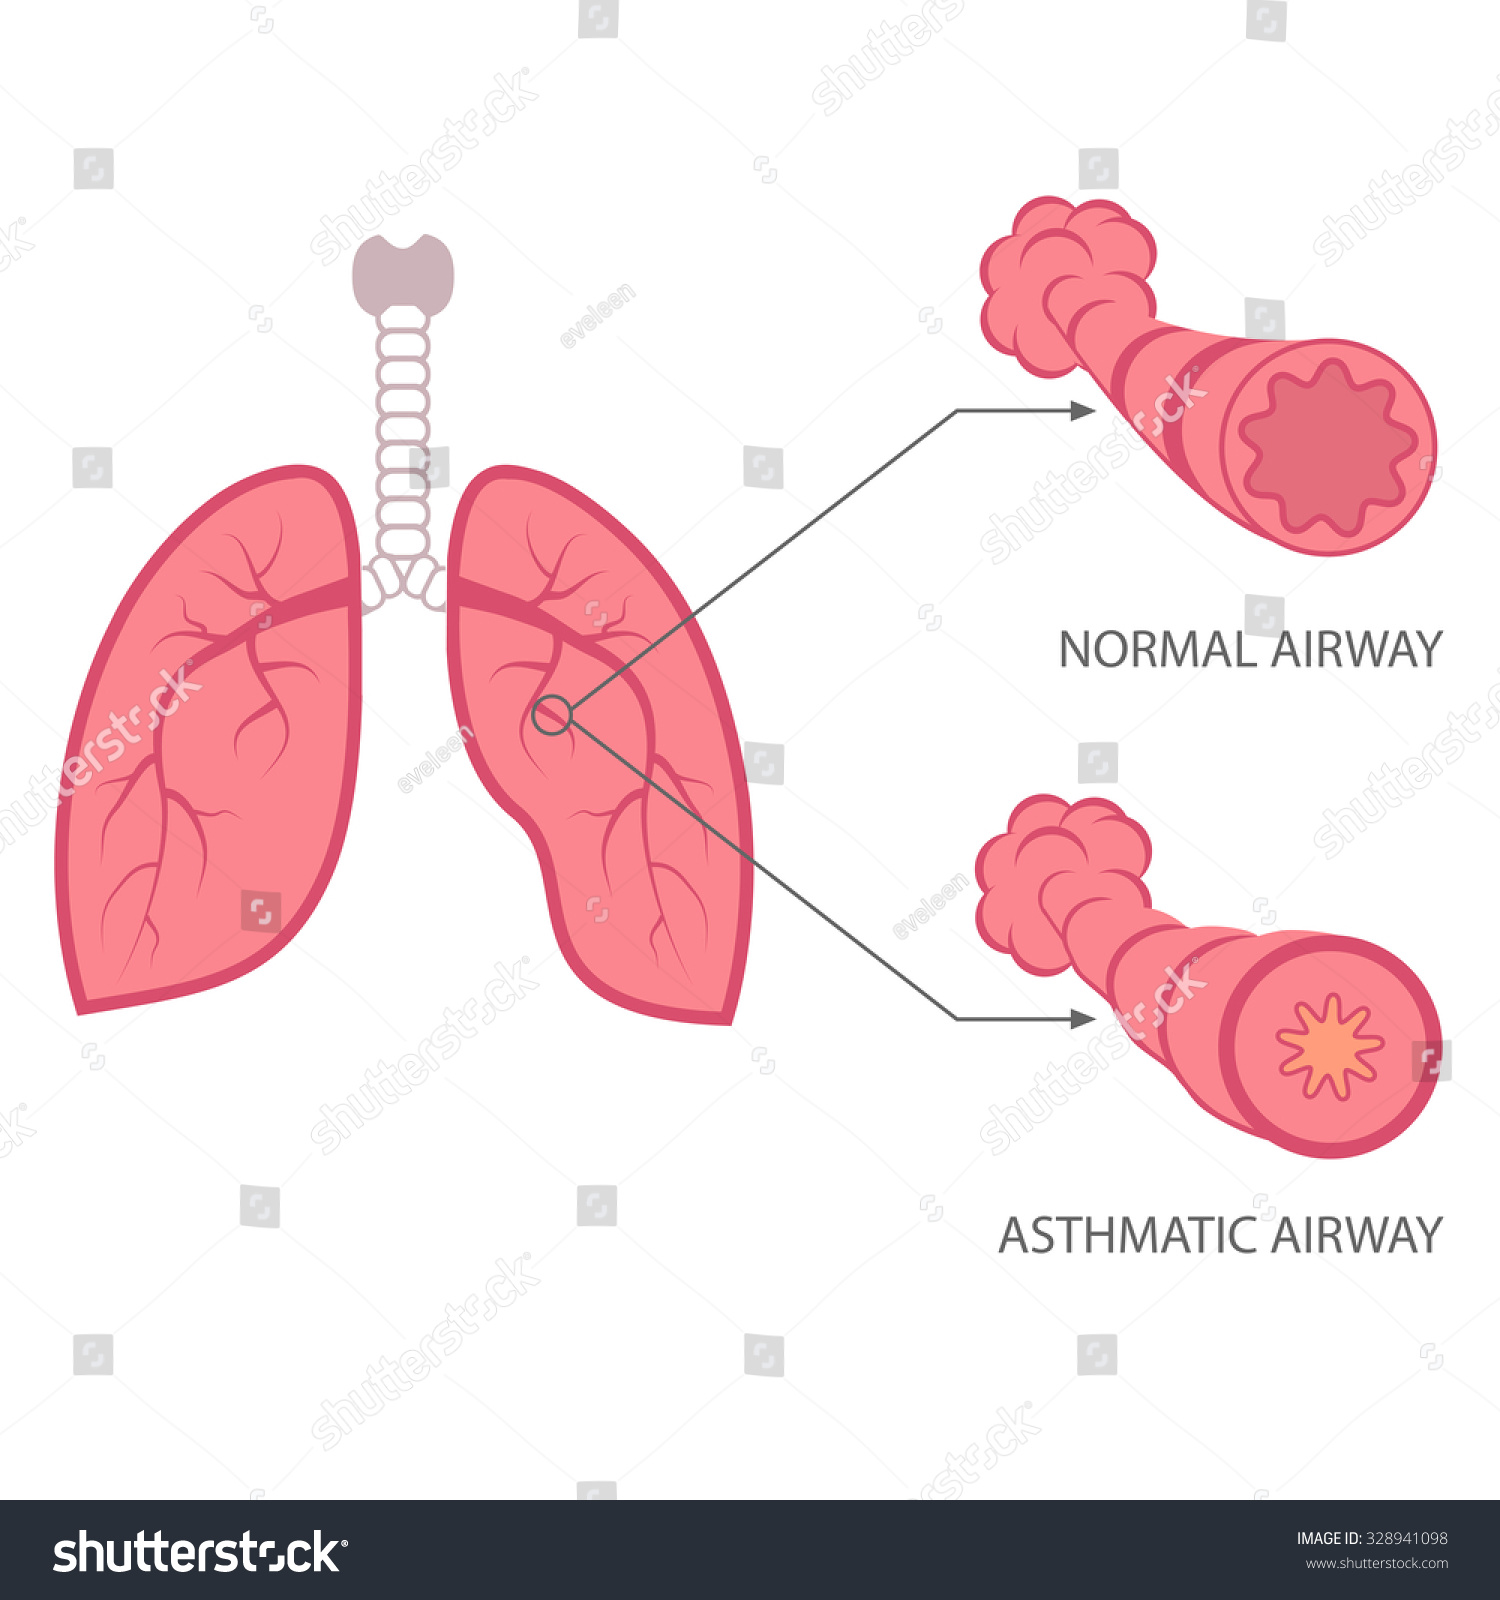 asthma a respiratory disease Asthma is a chronic (life time) disease that makes your lungs very sensitive and hard to breathe asthma can't be cured, but with proper treatment, people with asthma can lead normal, active livesif you have asthma, your airways (breathing passages) are.